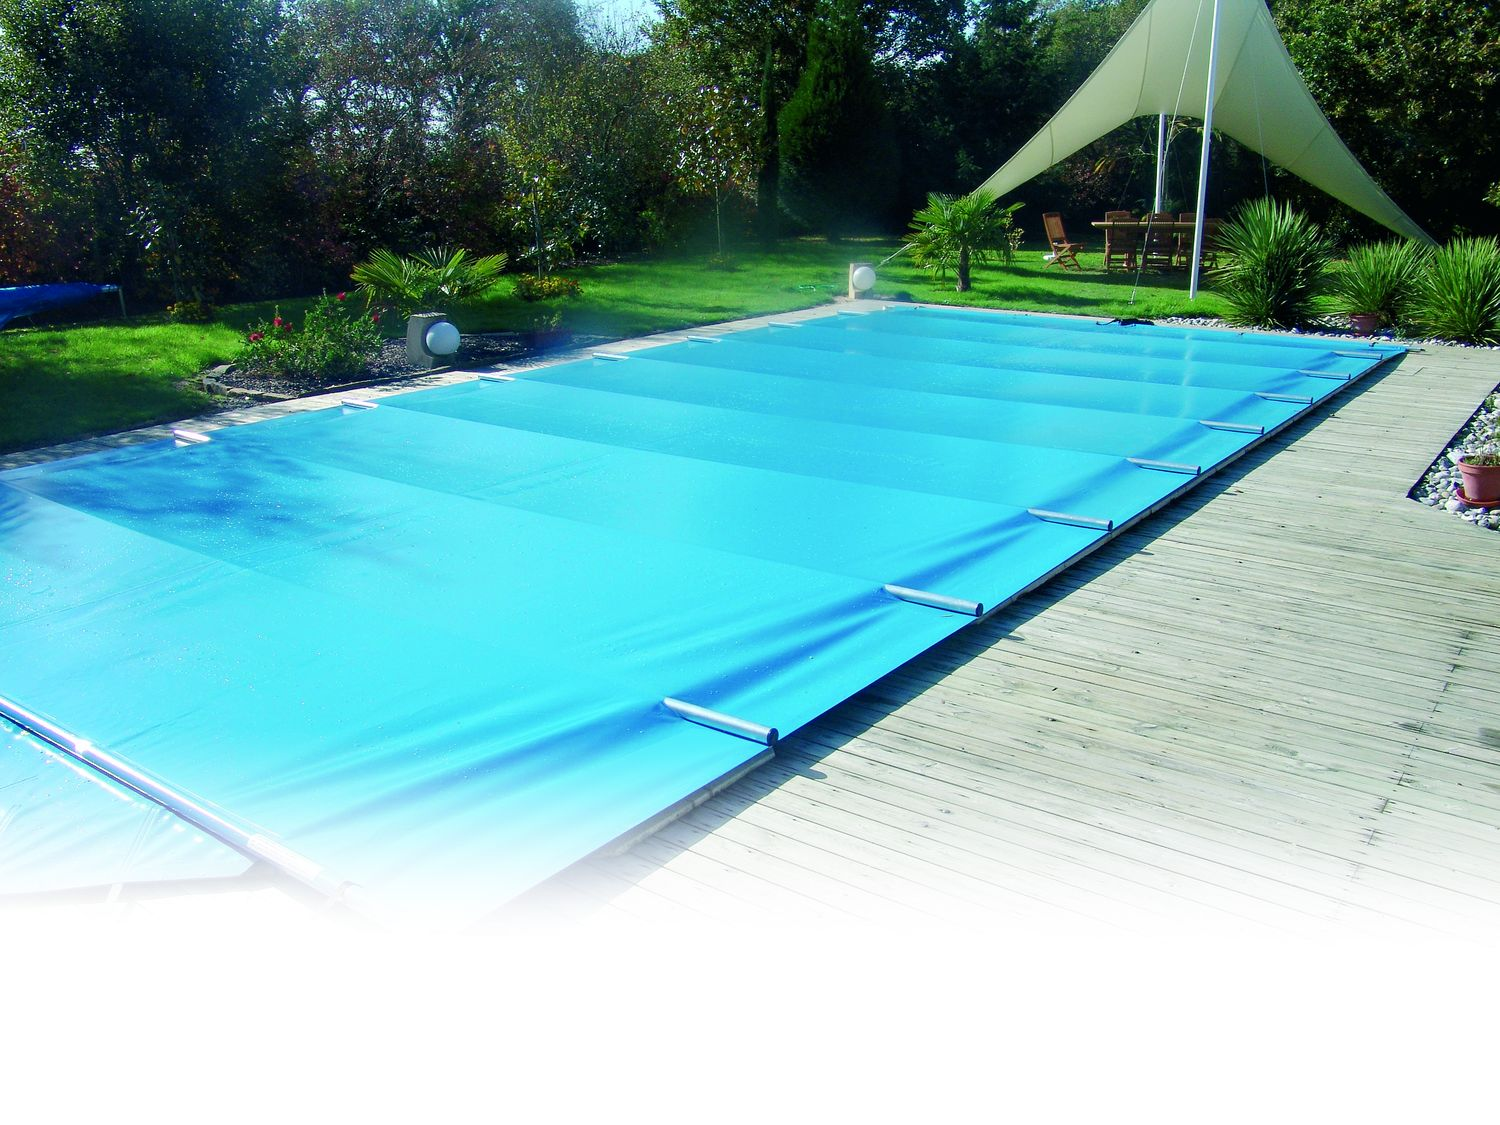 Couverture de piscine a barres 4 saisons la s curit for Bache a barre piscine motorise